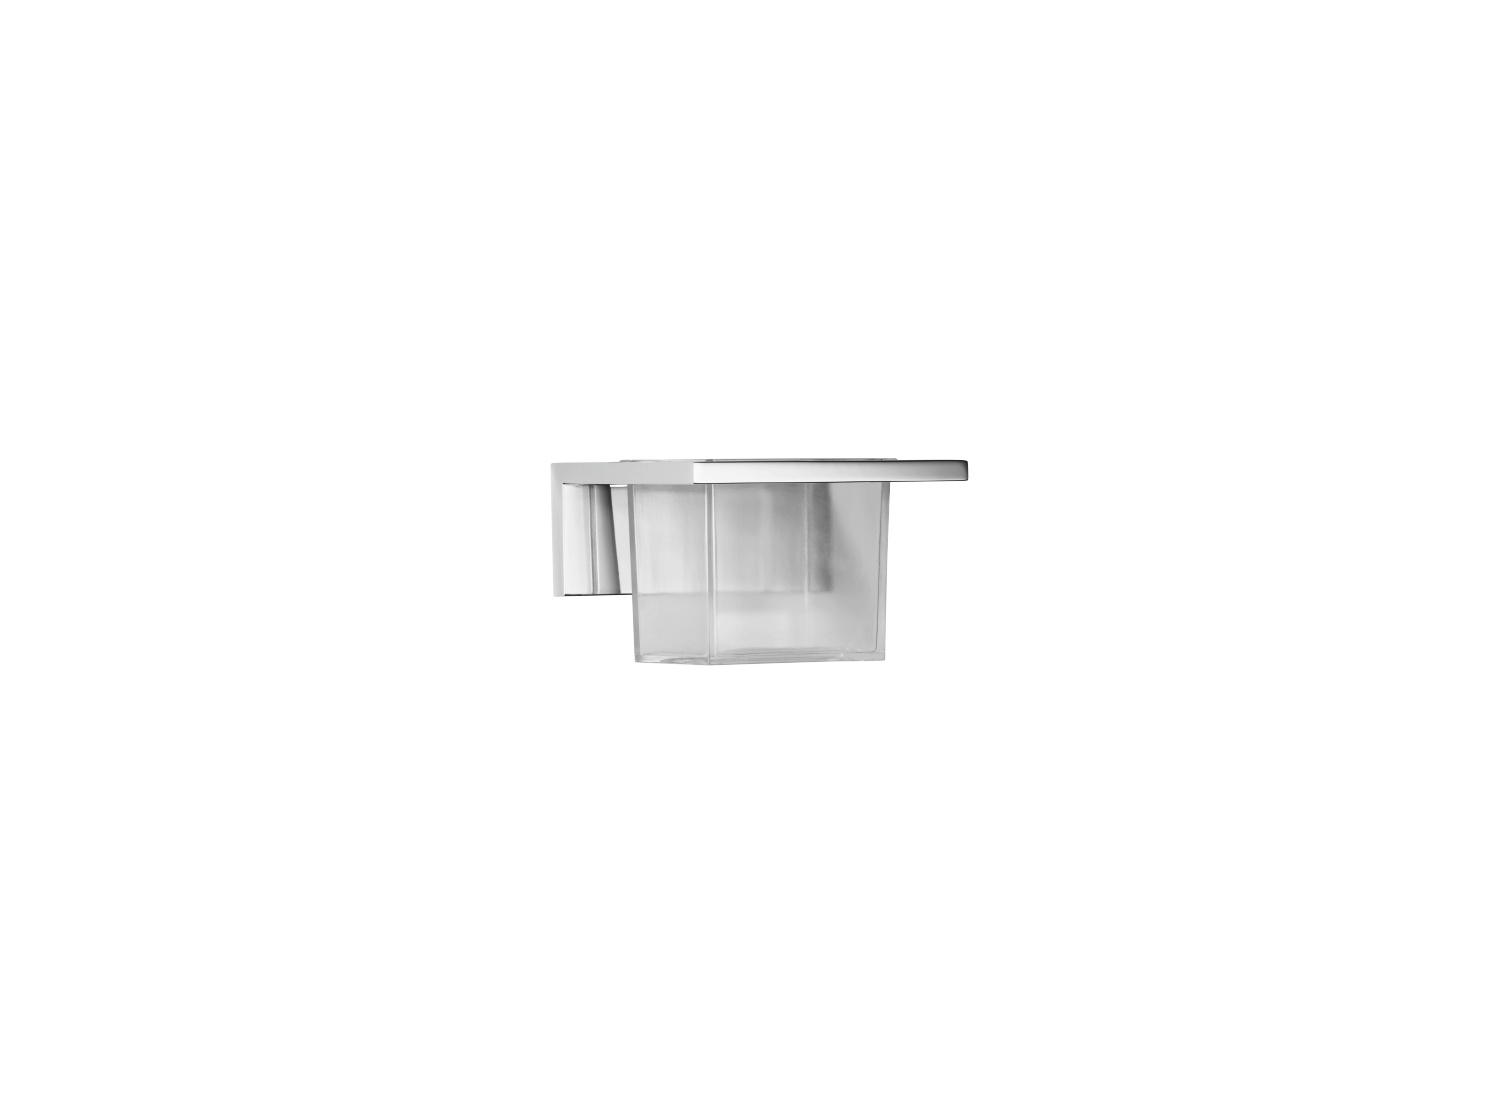 Tumbler holder wall model - platinum matt